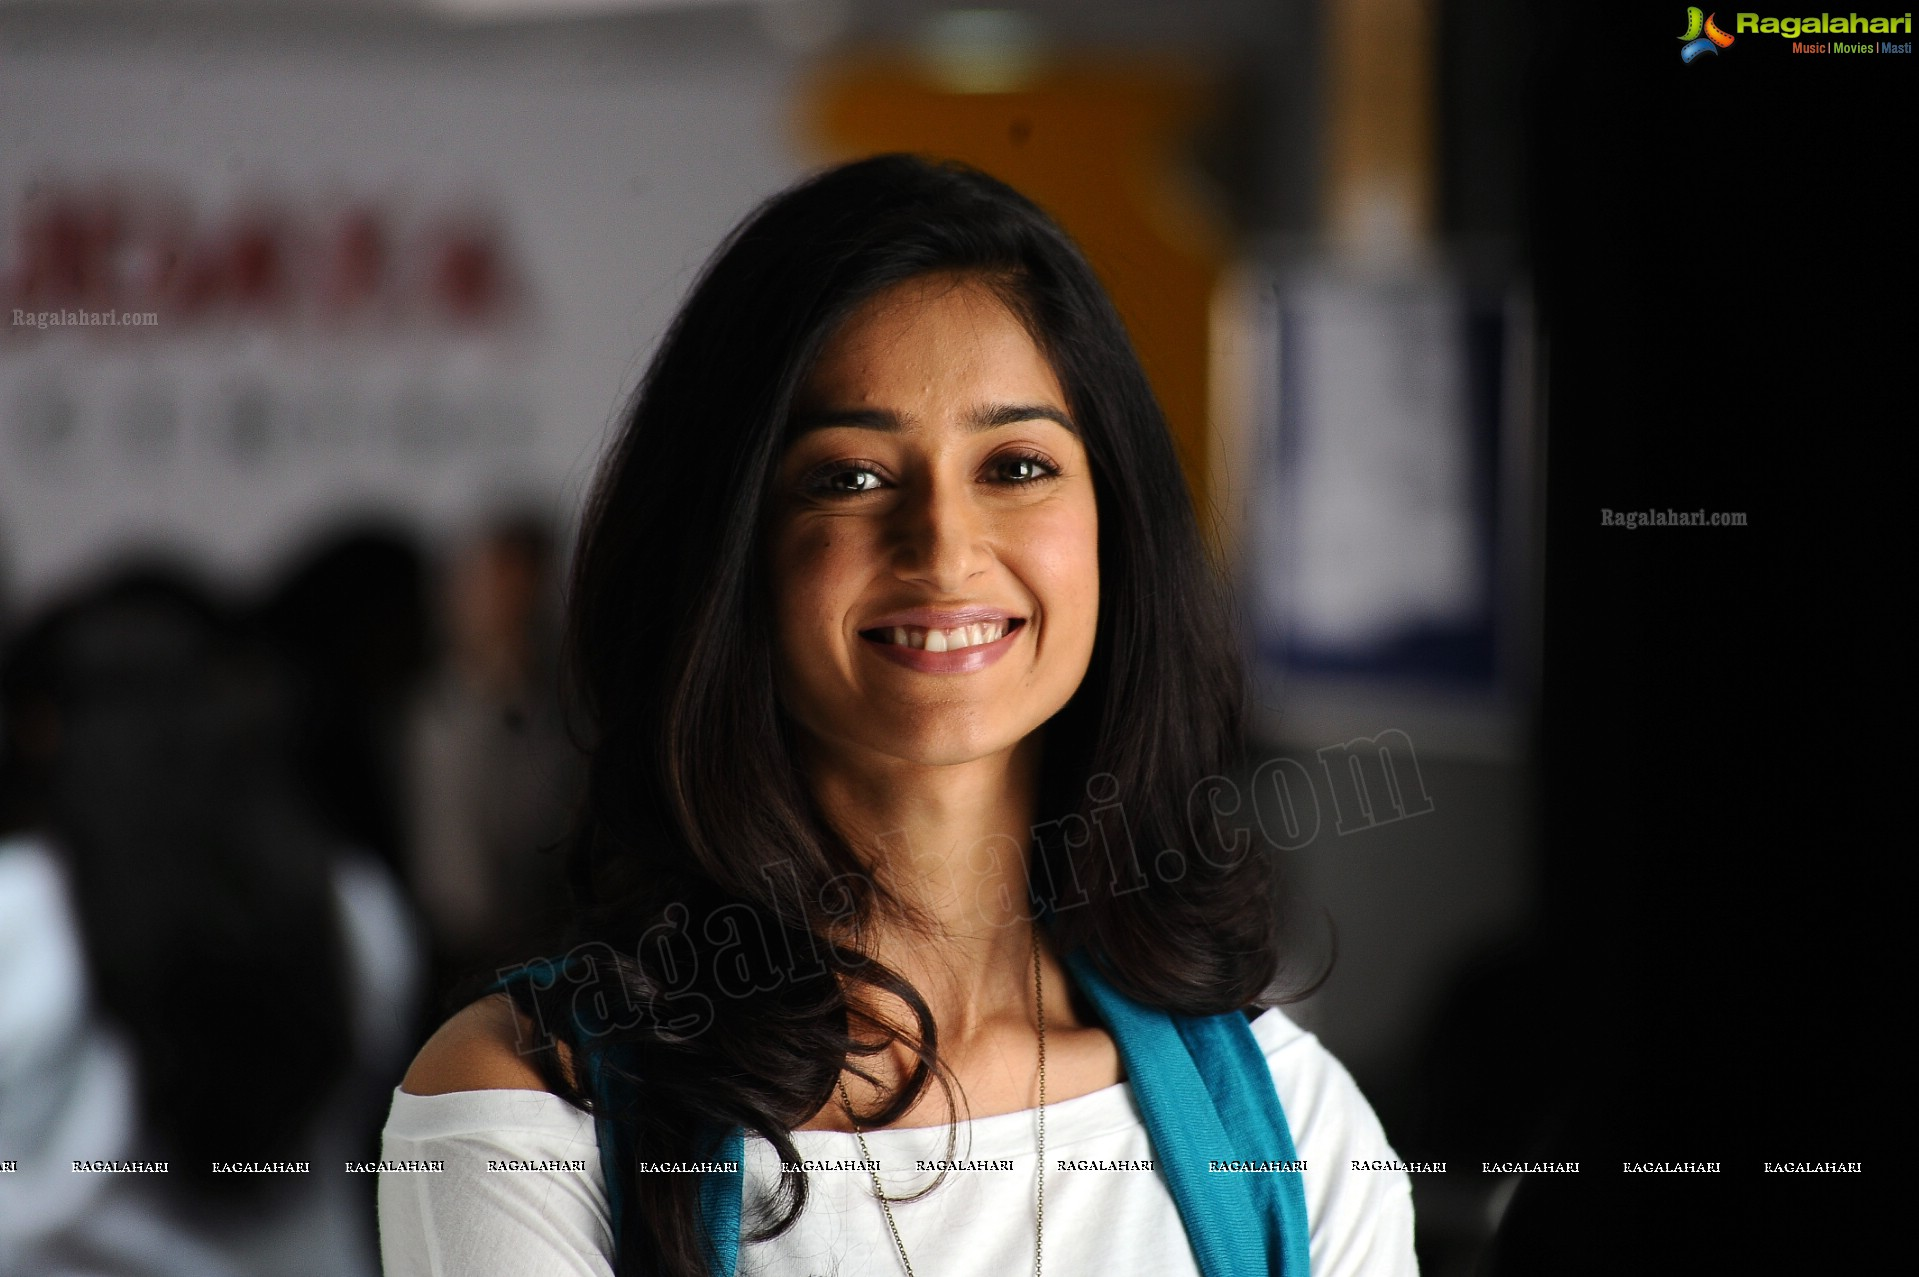 ileana (hd) image 74 | tollywood actress photos,stills, heroines